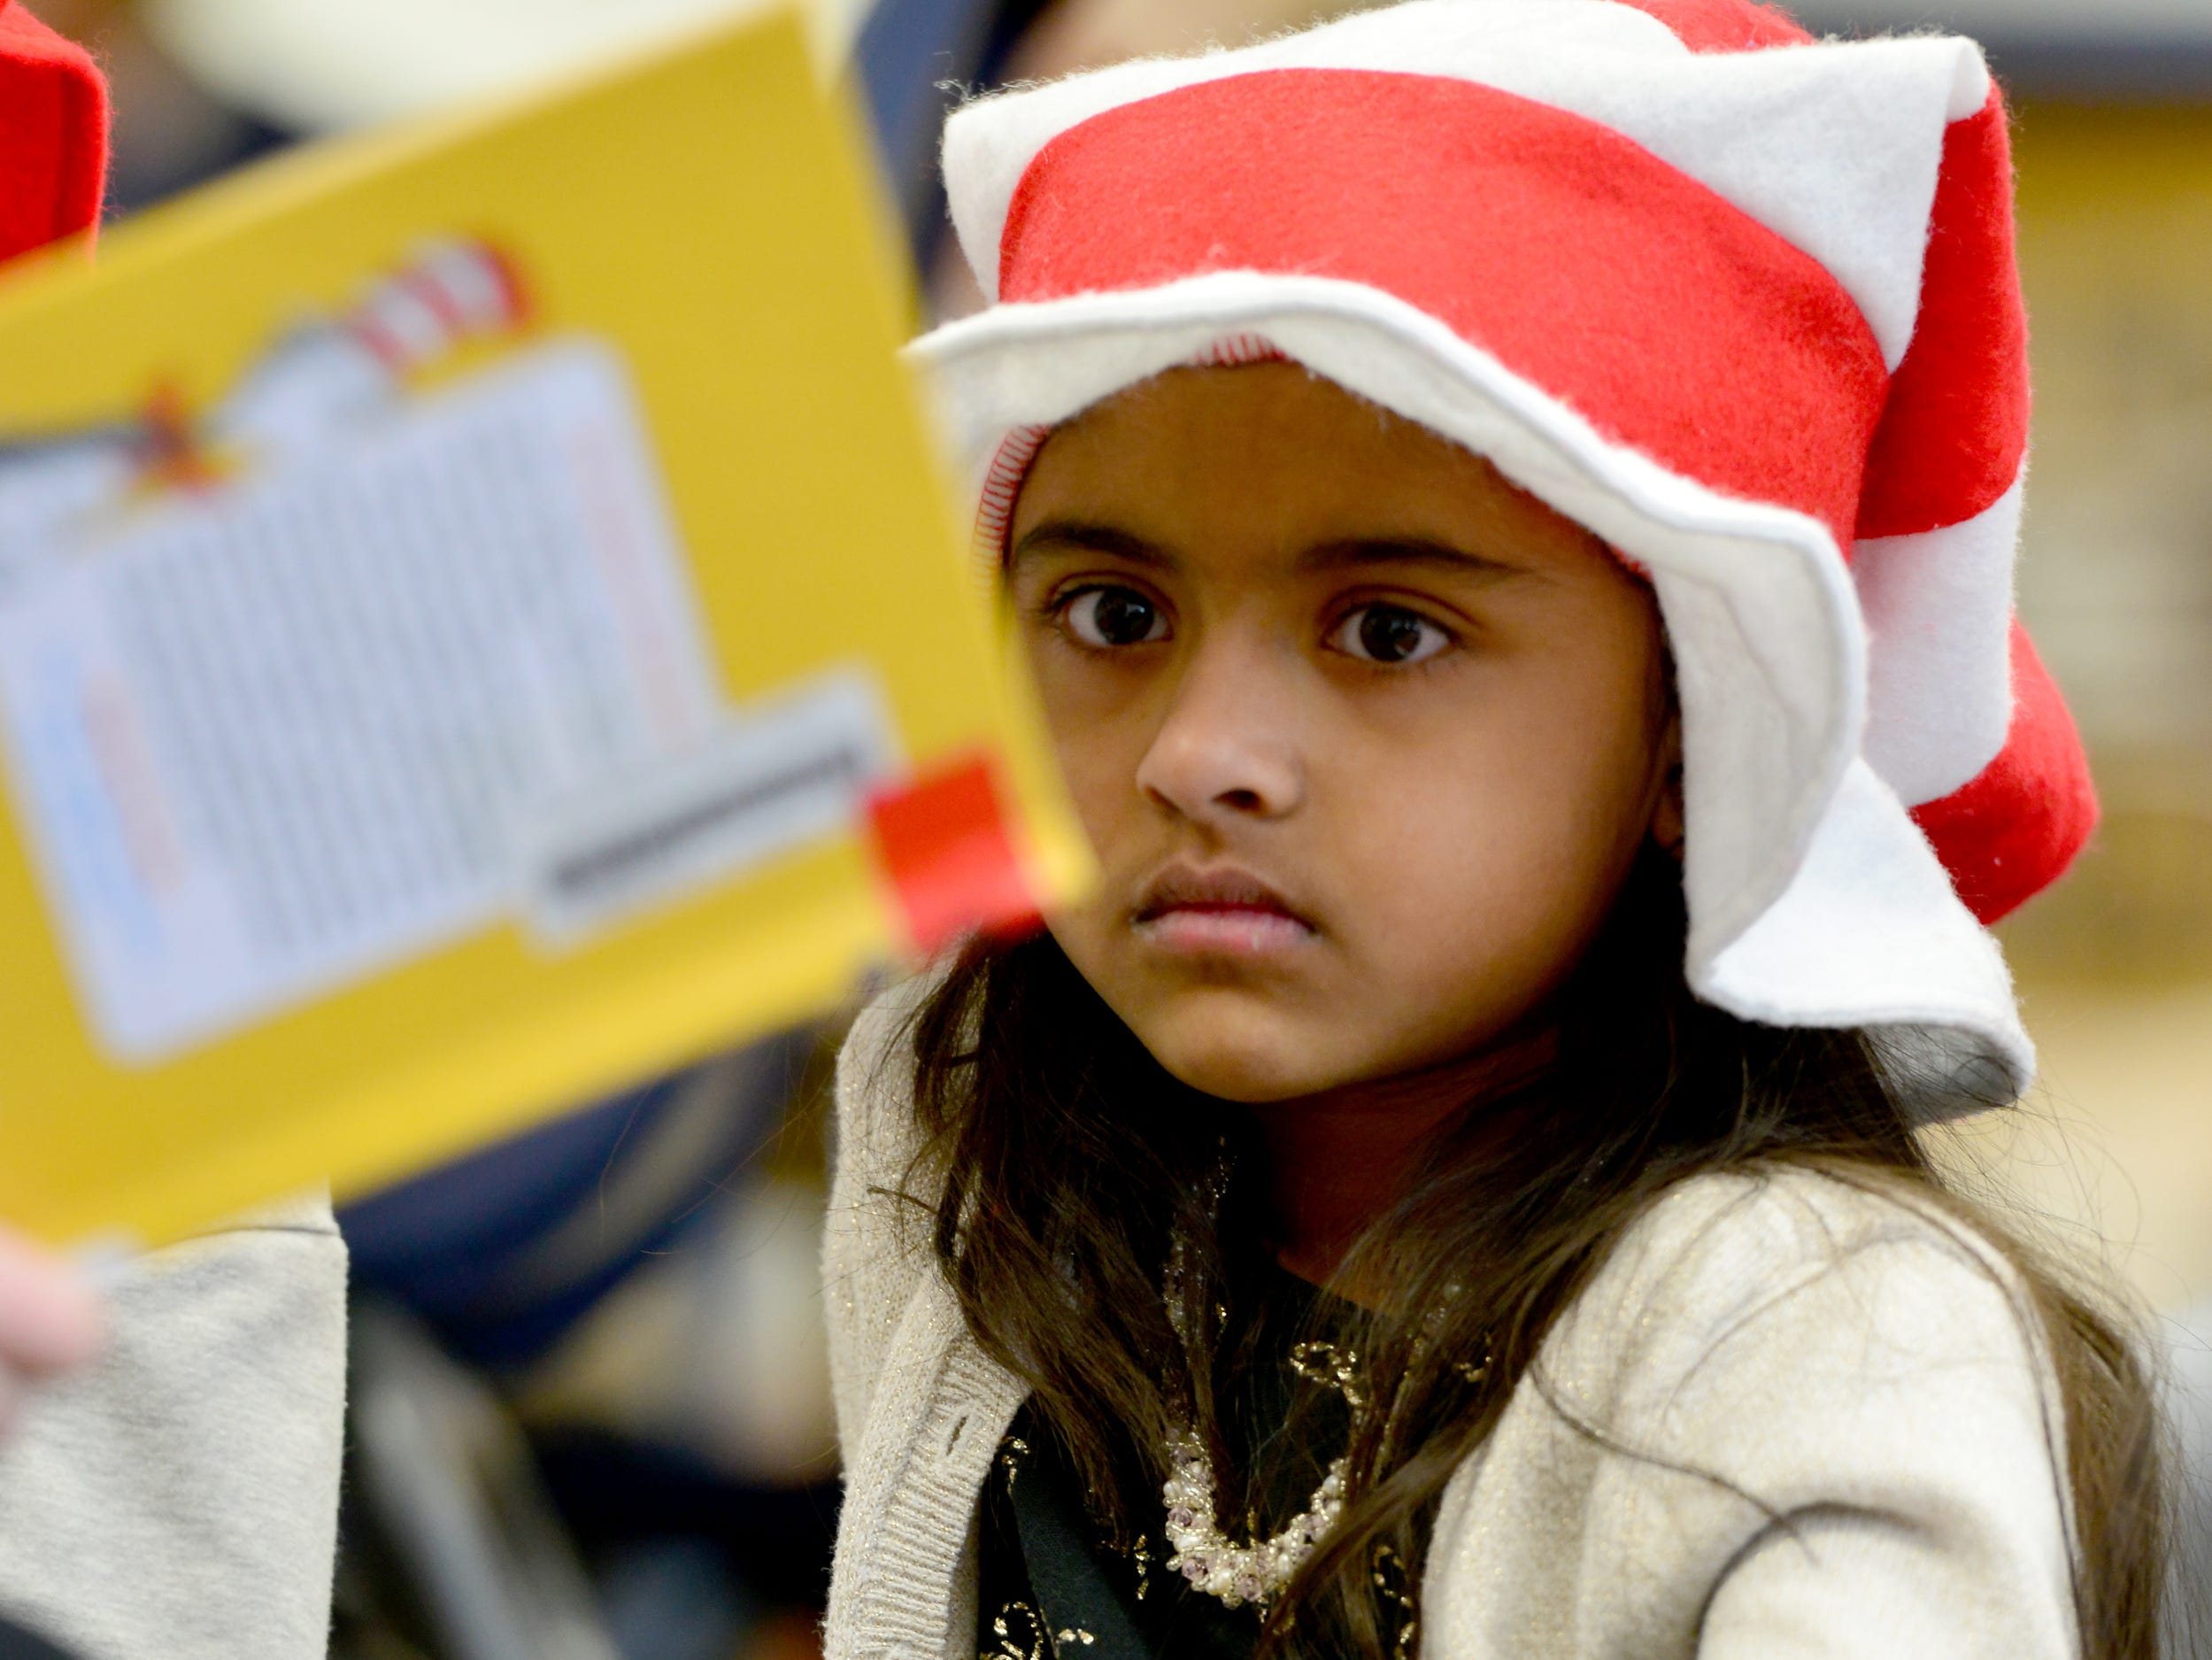 Saanvi Bodami listens to a story. Volleyball players from William Paterson University read to the second grade class at High Mountain Road School in Franklin Lakes on Friday March 1, 2019.